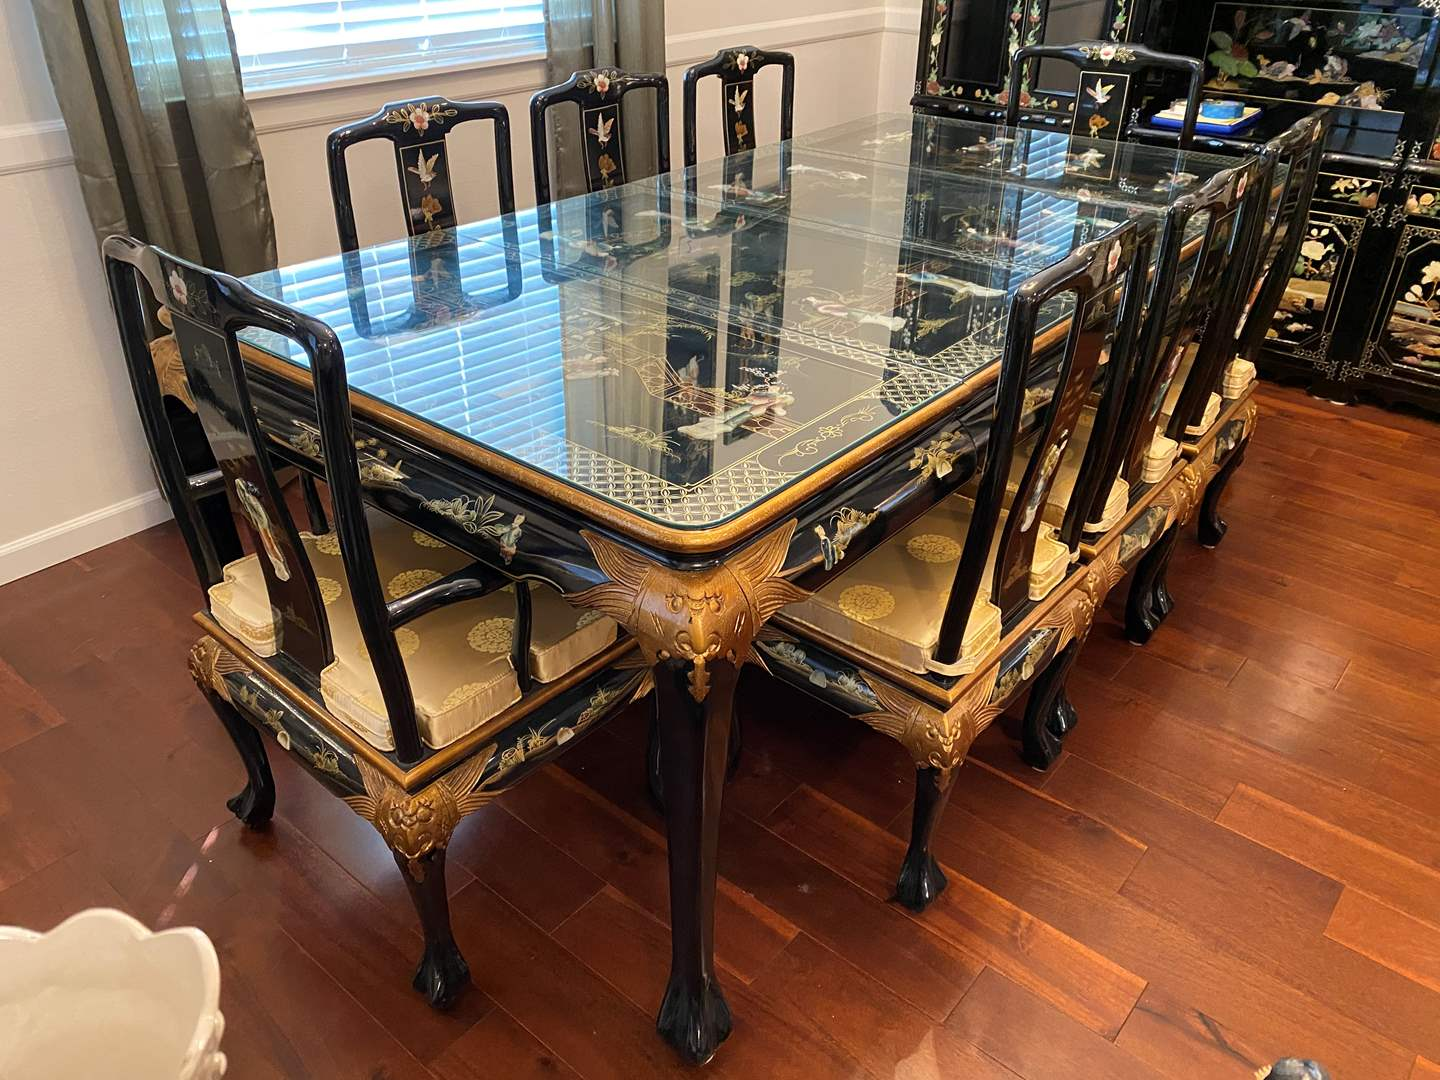 Lot # 6 - Beautiful Ornate Asian Black Lacquered Dining Room Table w/8 Chairs  & 2 Leaves (main image)